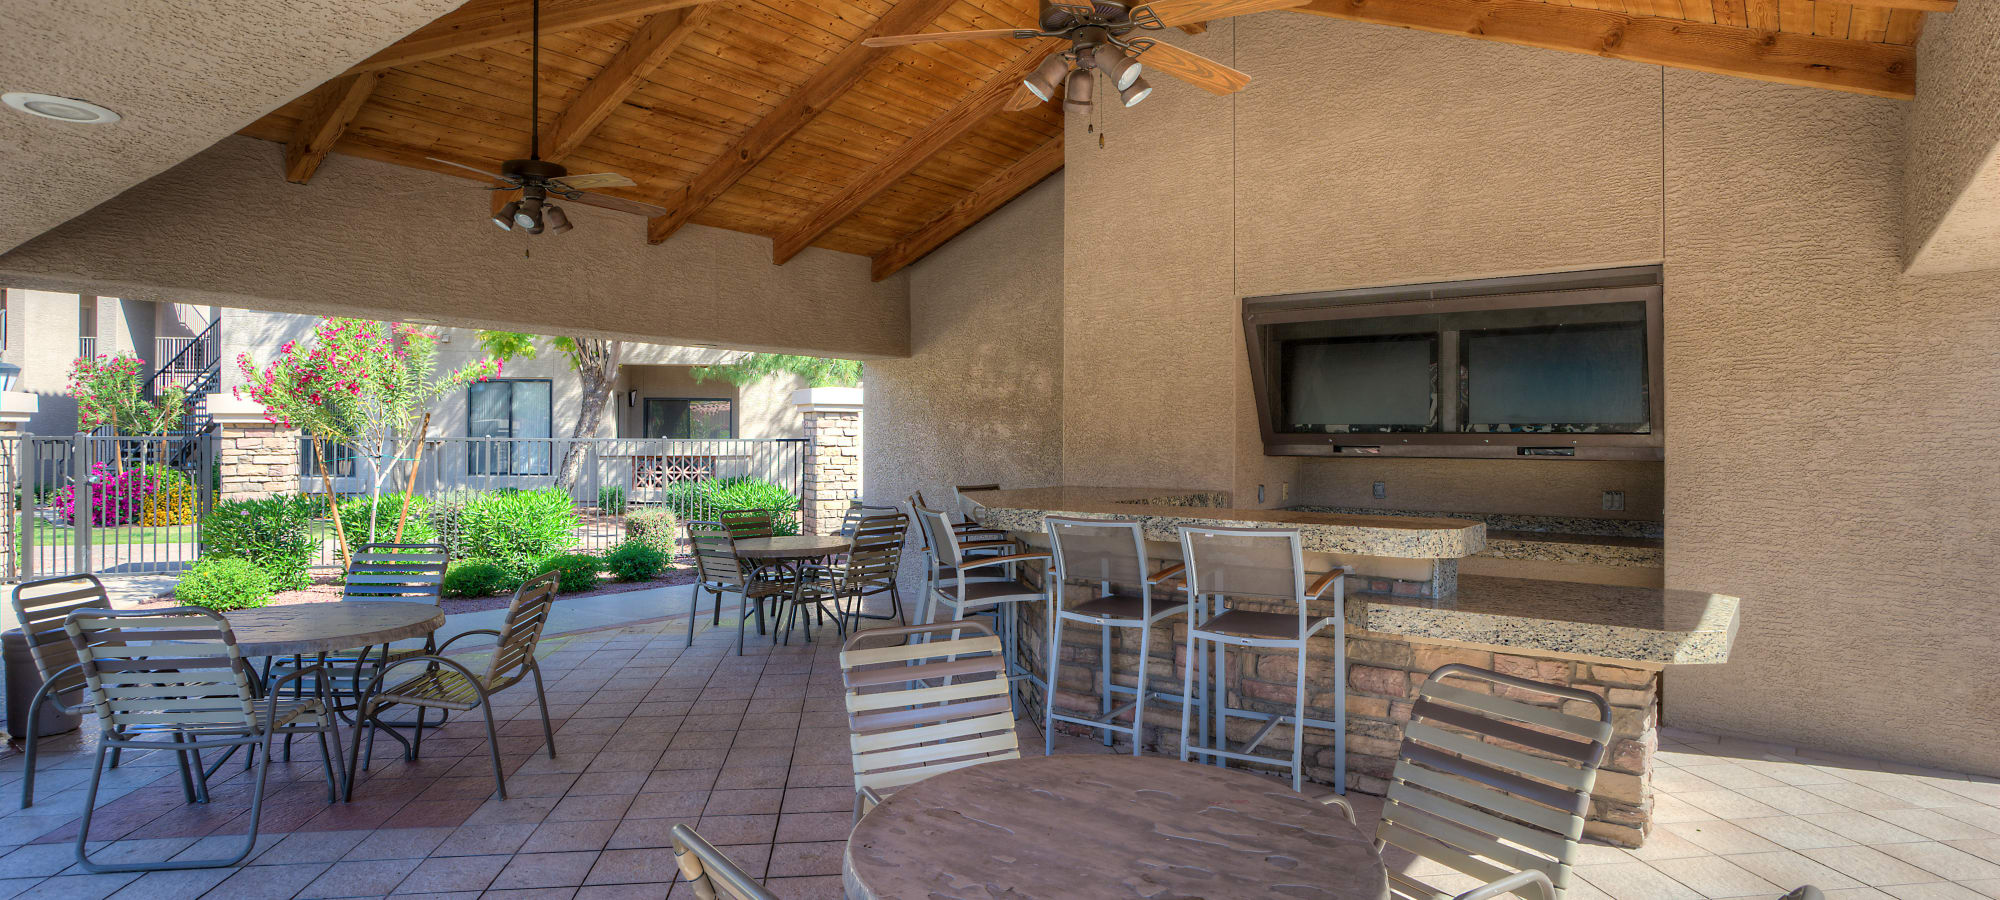 Covered outdoor seating in one of the common areas at San Pedregal in Phoenix, Arizona